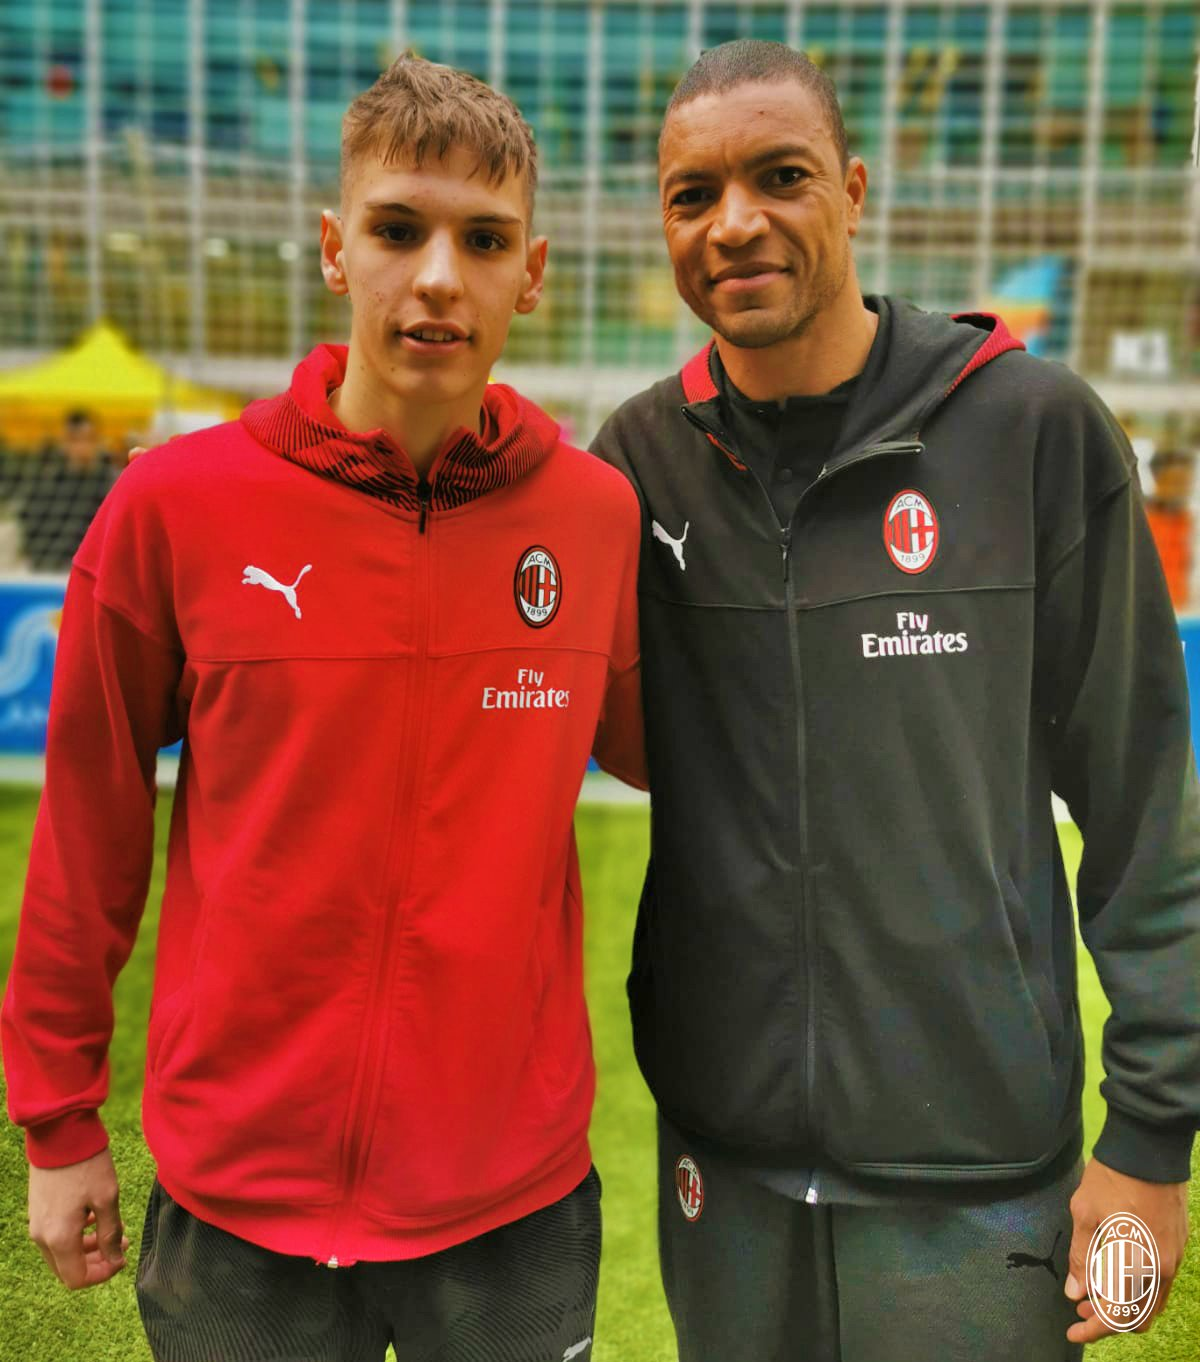 ACMilan Youth Sector on Twitter: